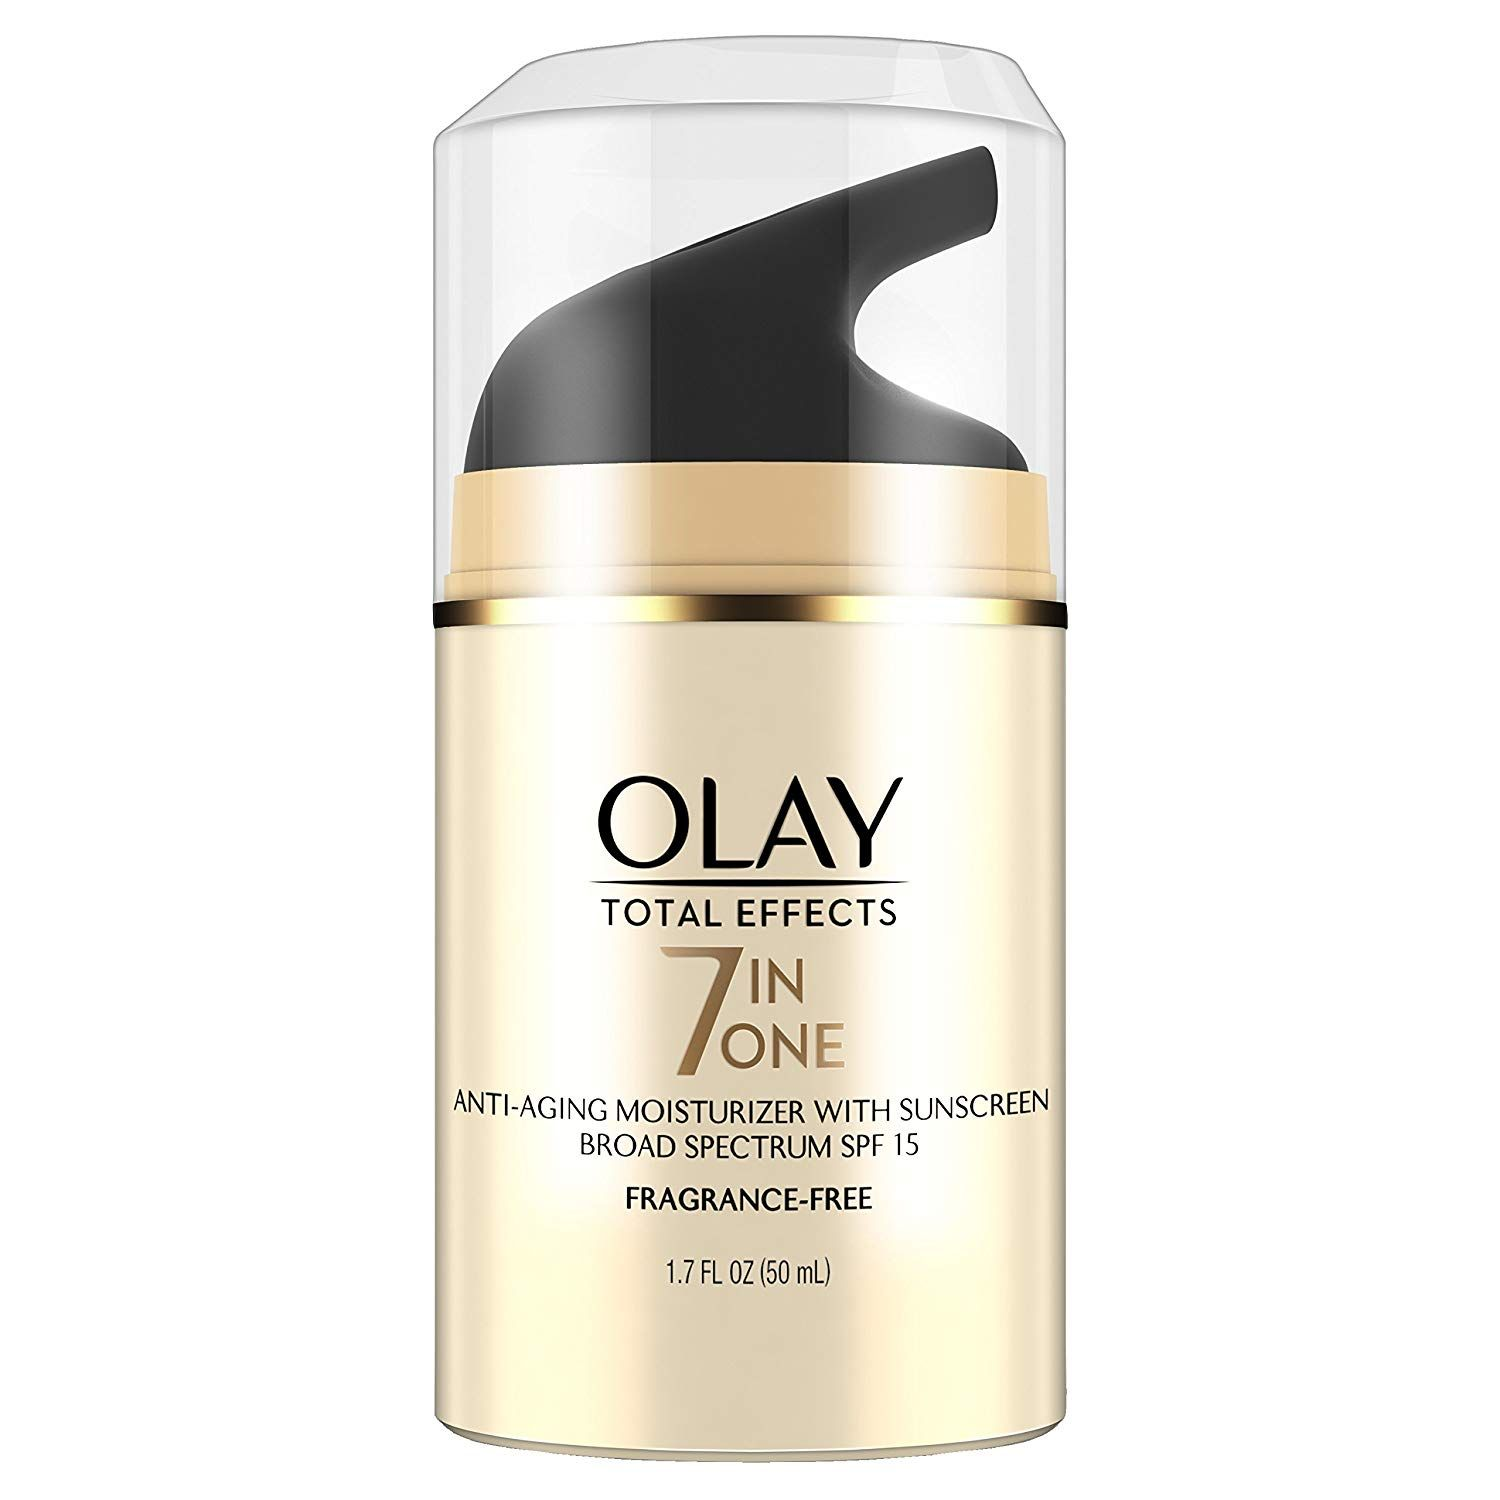 Olay Total Effects Anti-Aging Moisturizer SPF 15